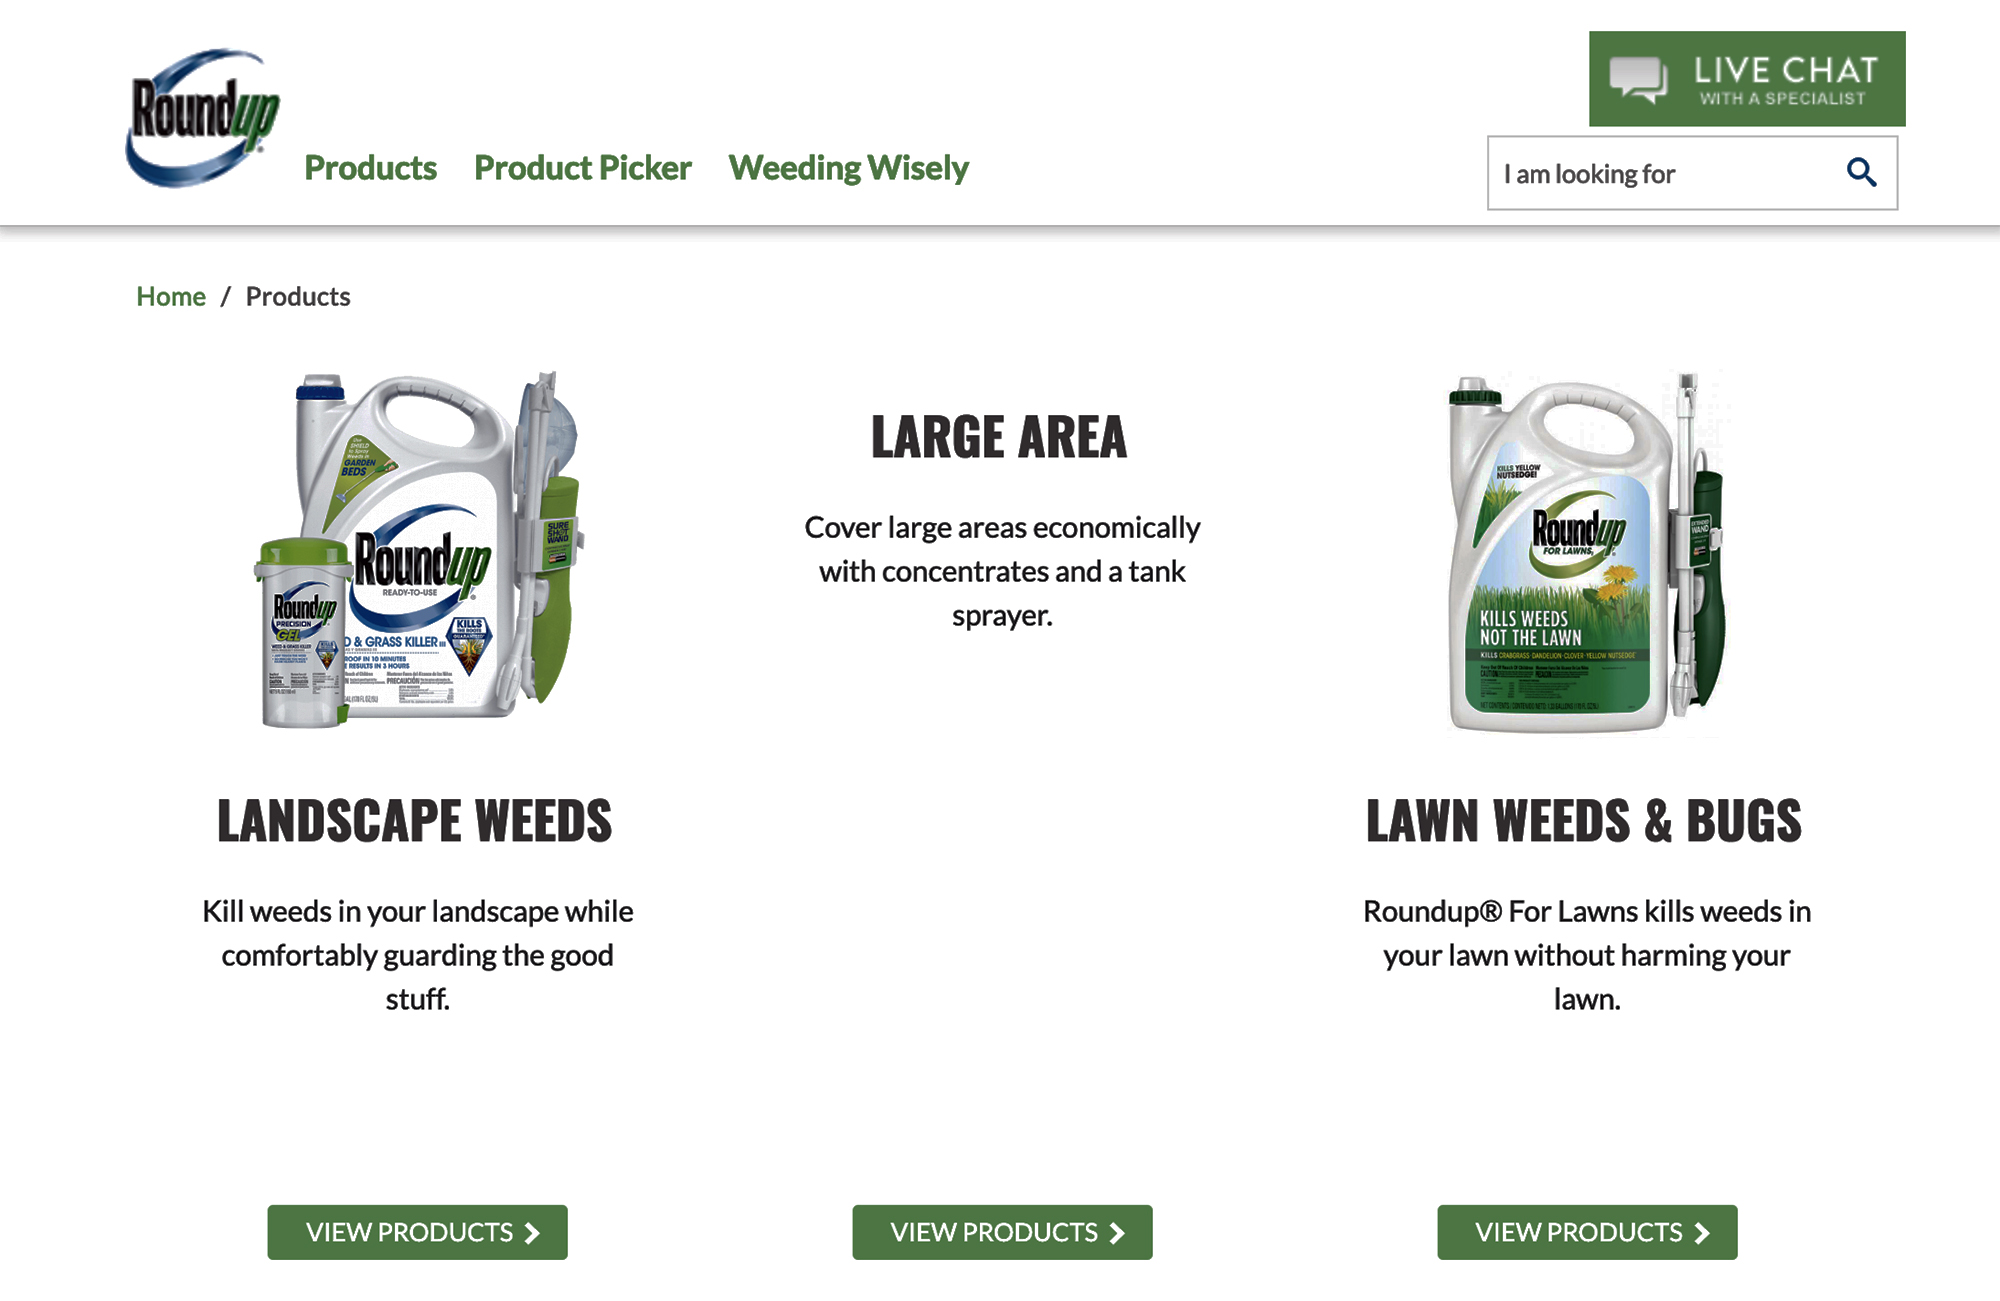 This is a screenshot of a Roundup herbicide product page.